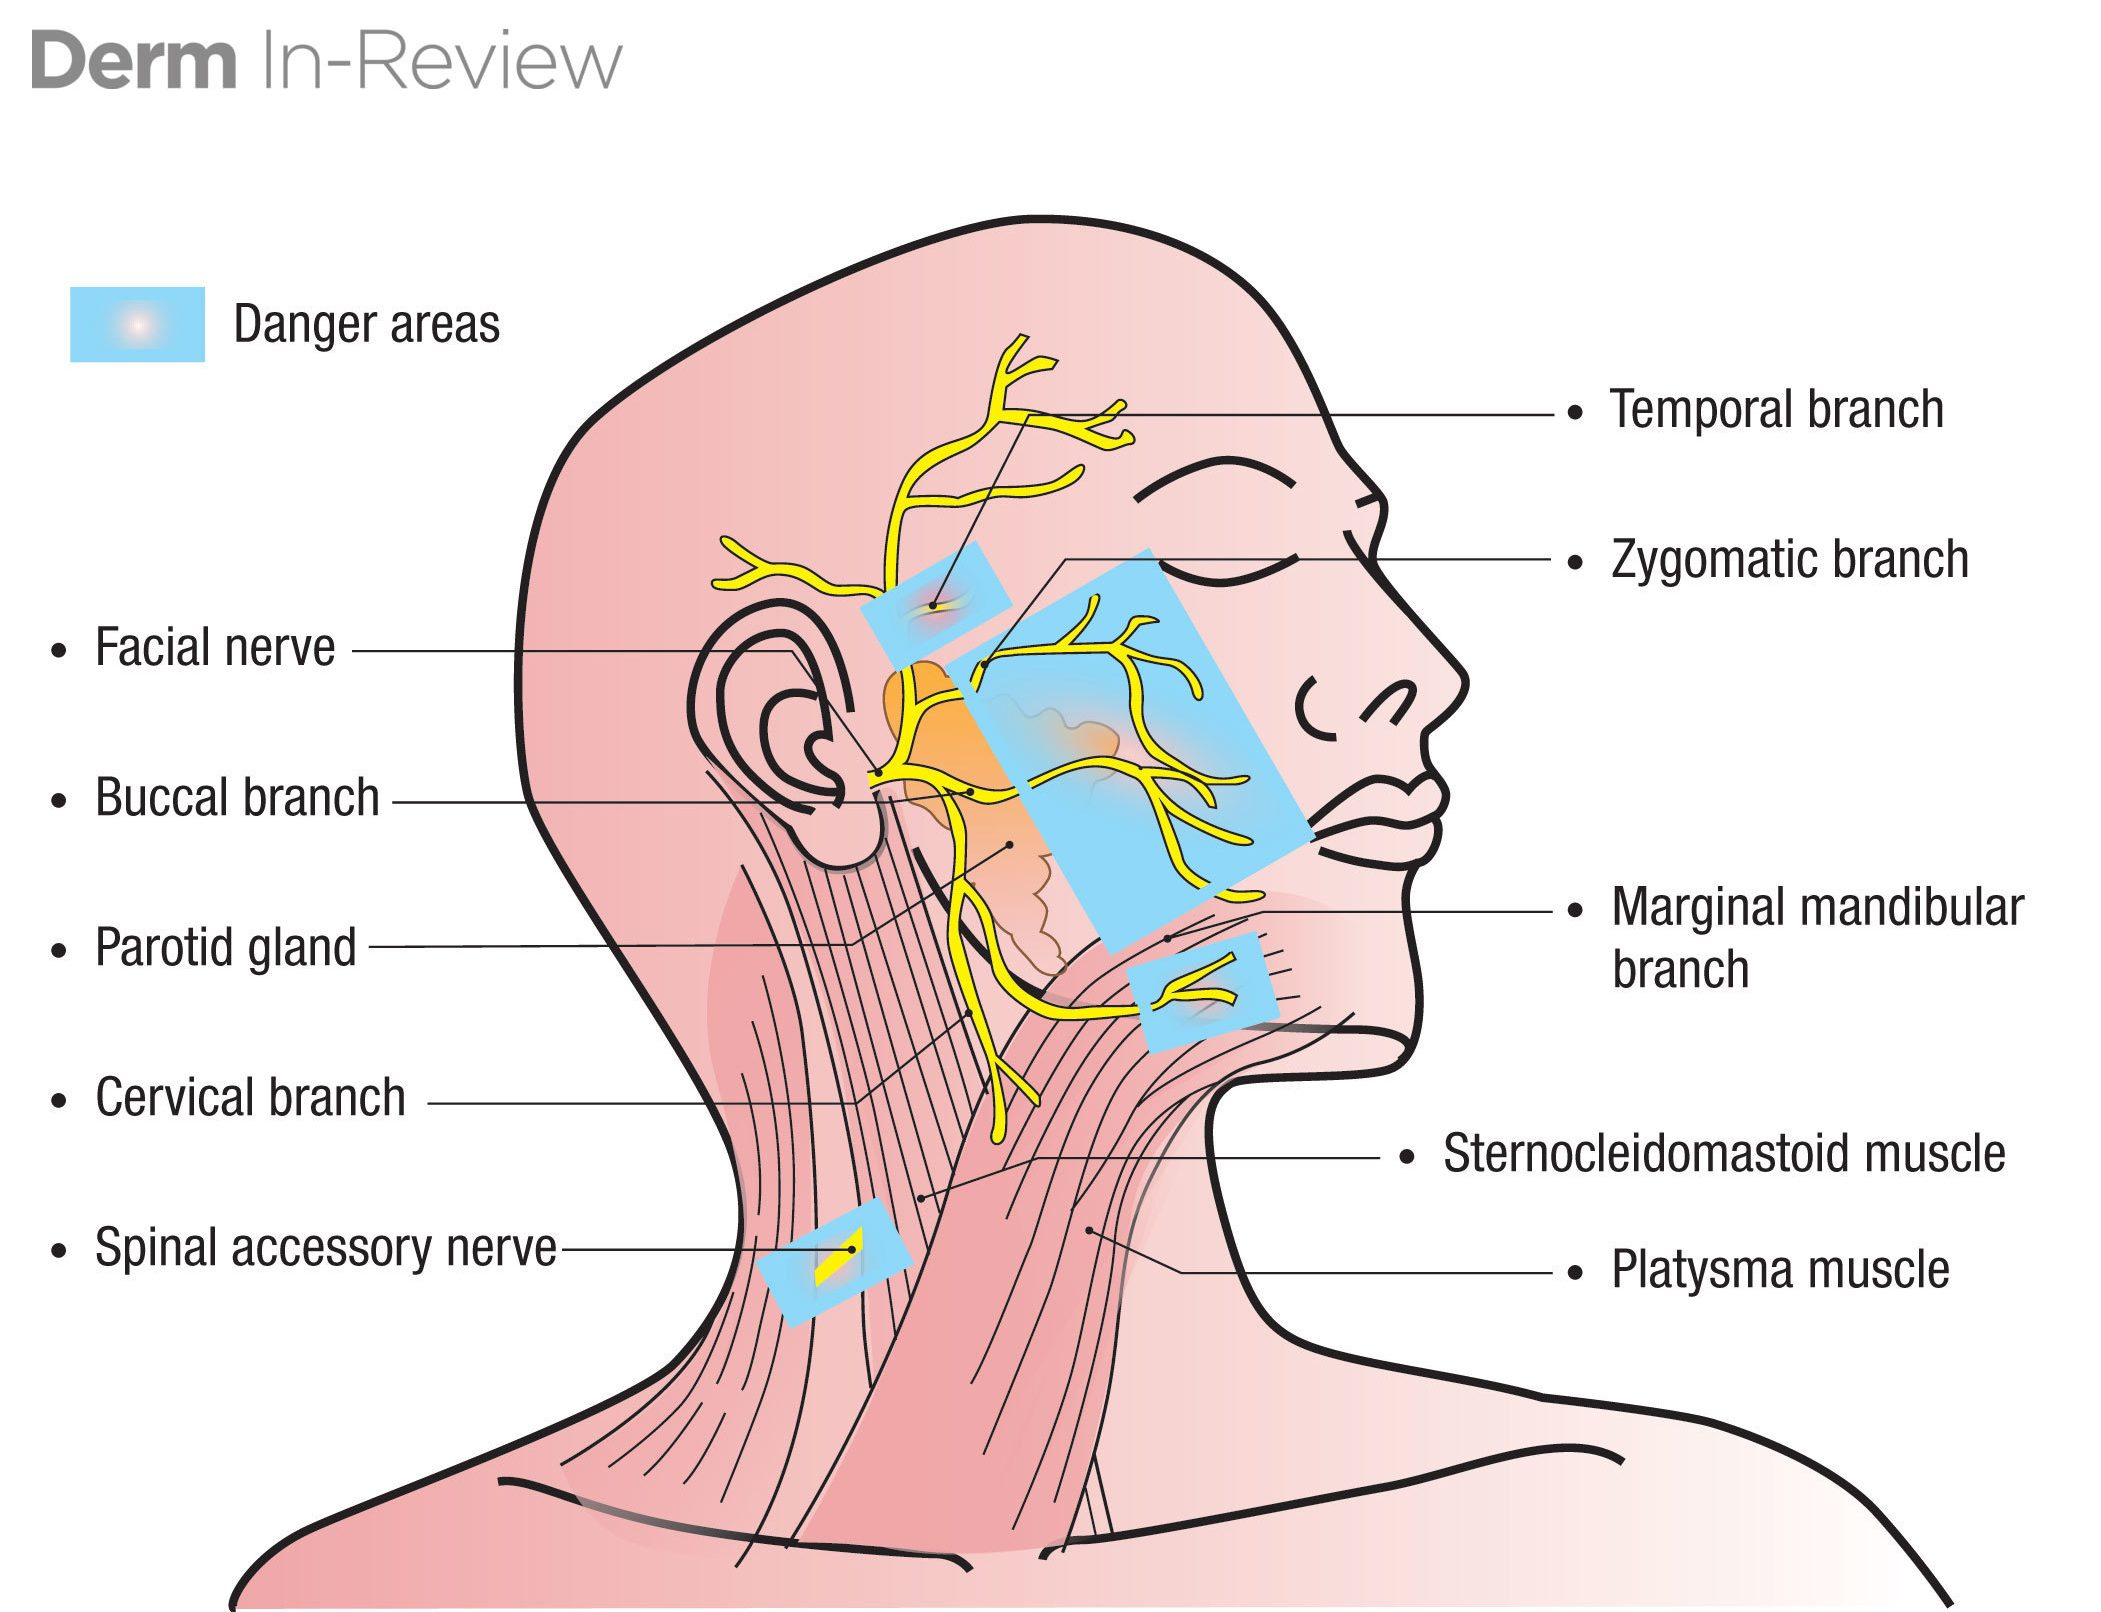 Facial nerve (CN7) branches and danger zones.